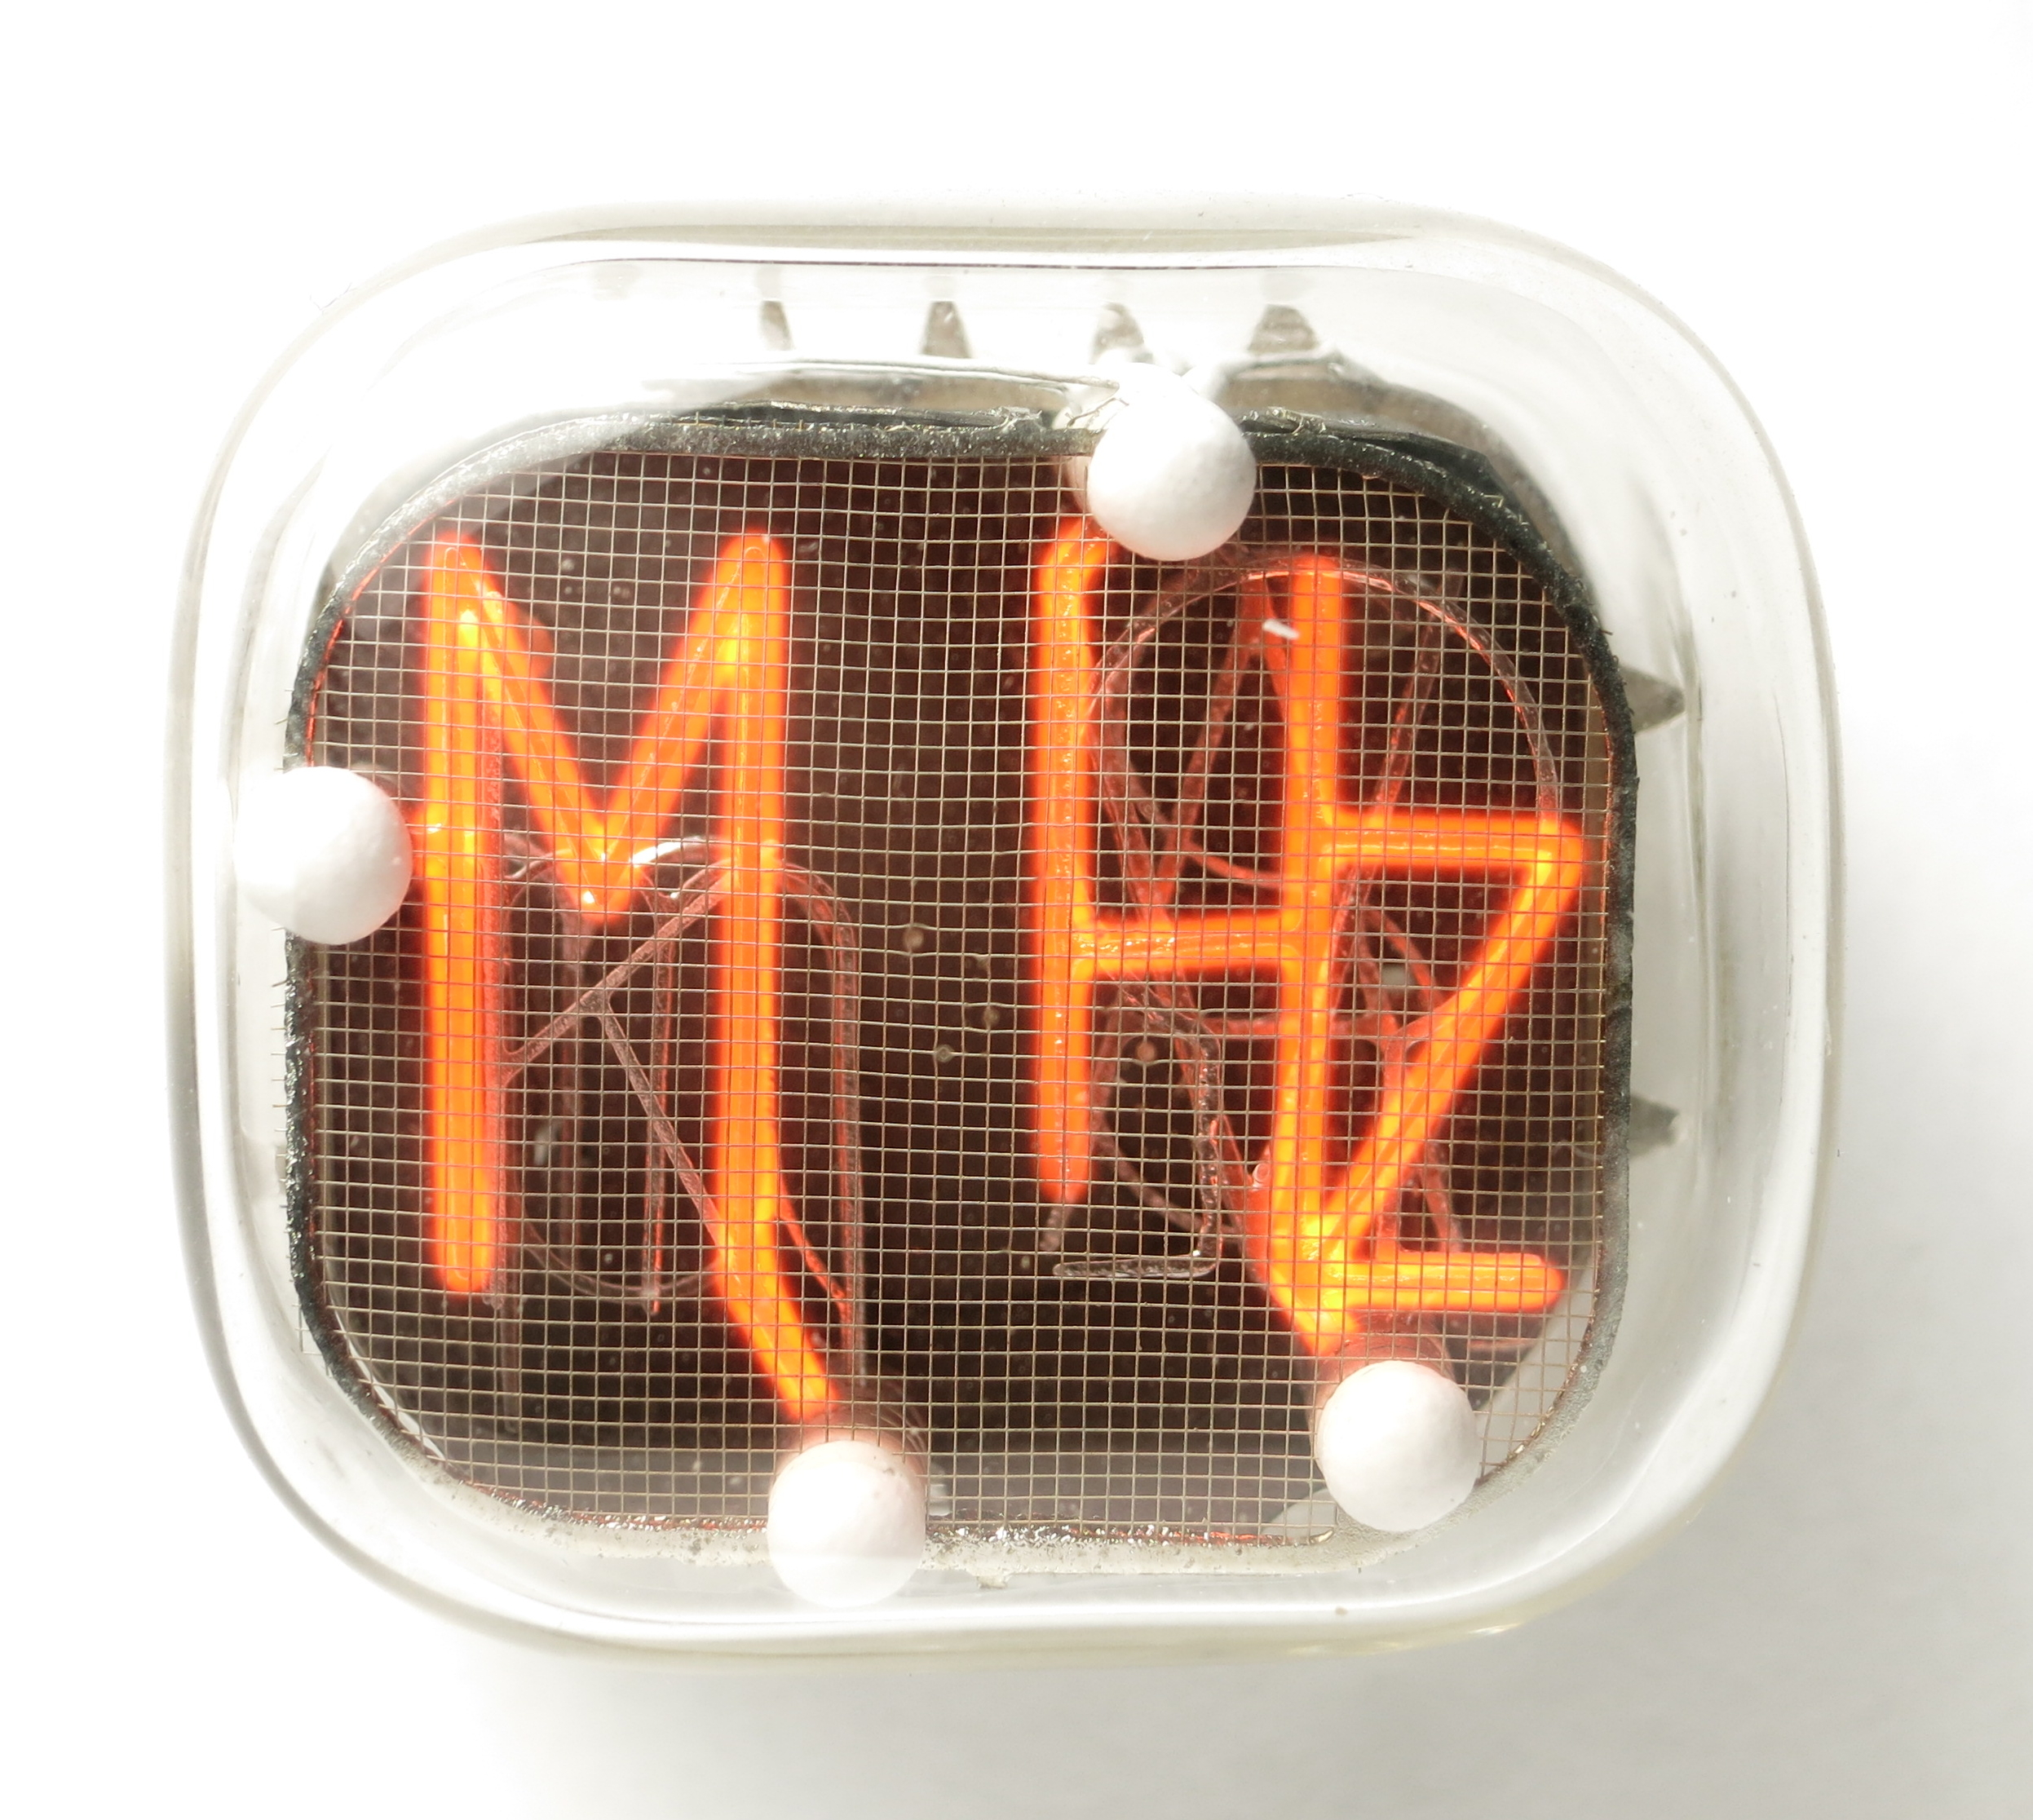 The combined symbol 'MHz' of the IN-XX